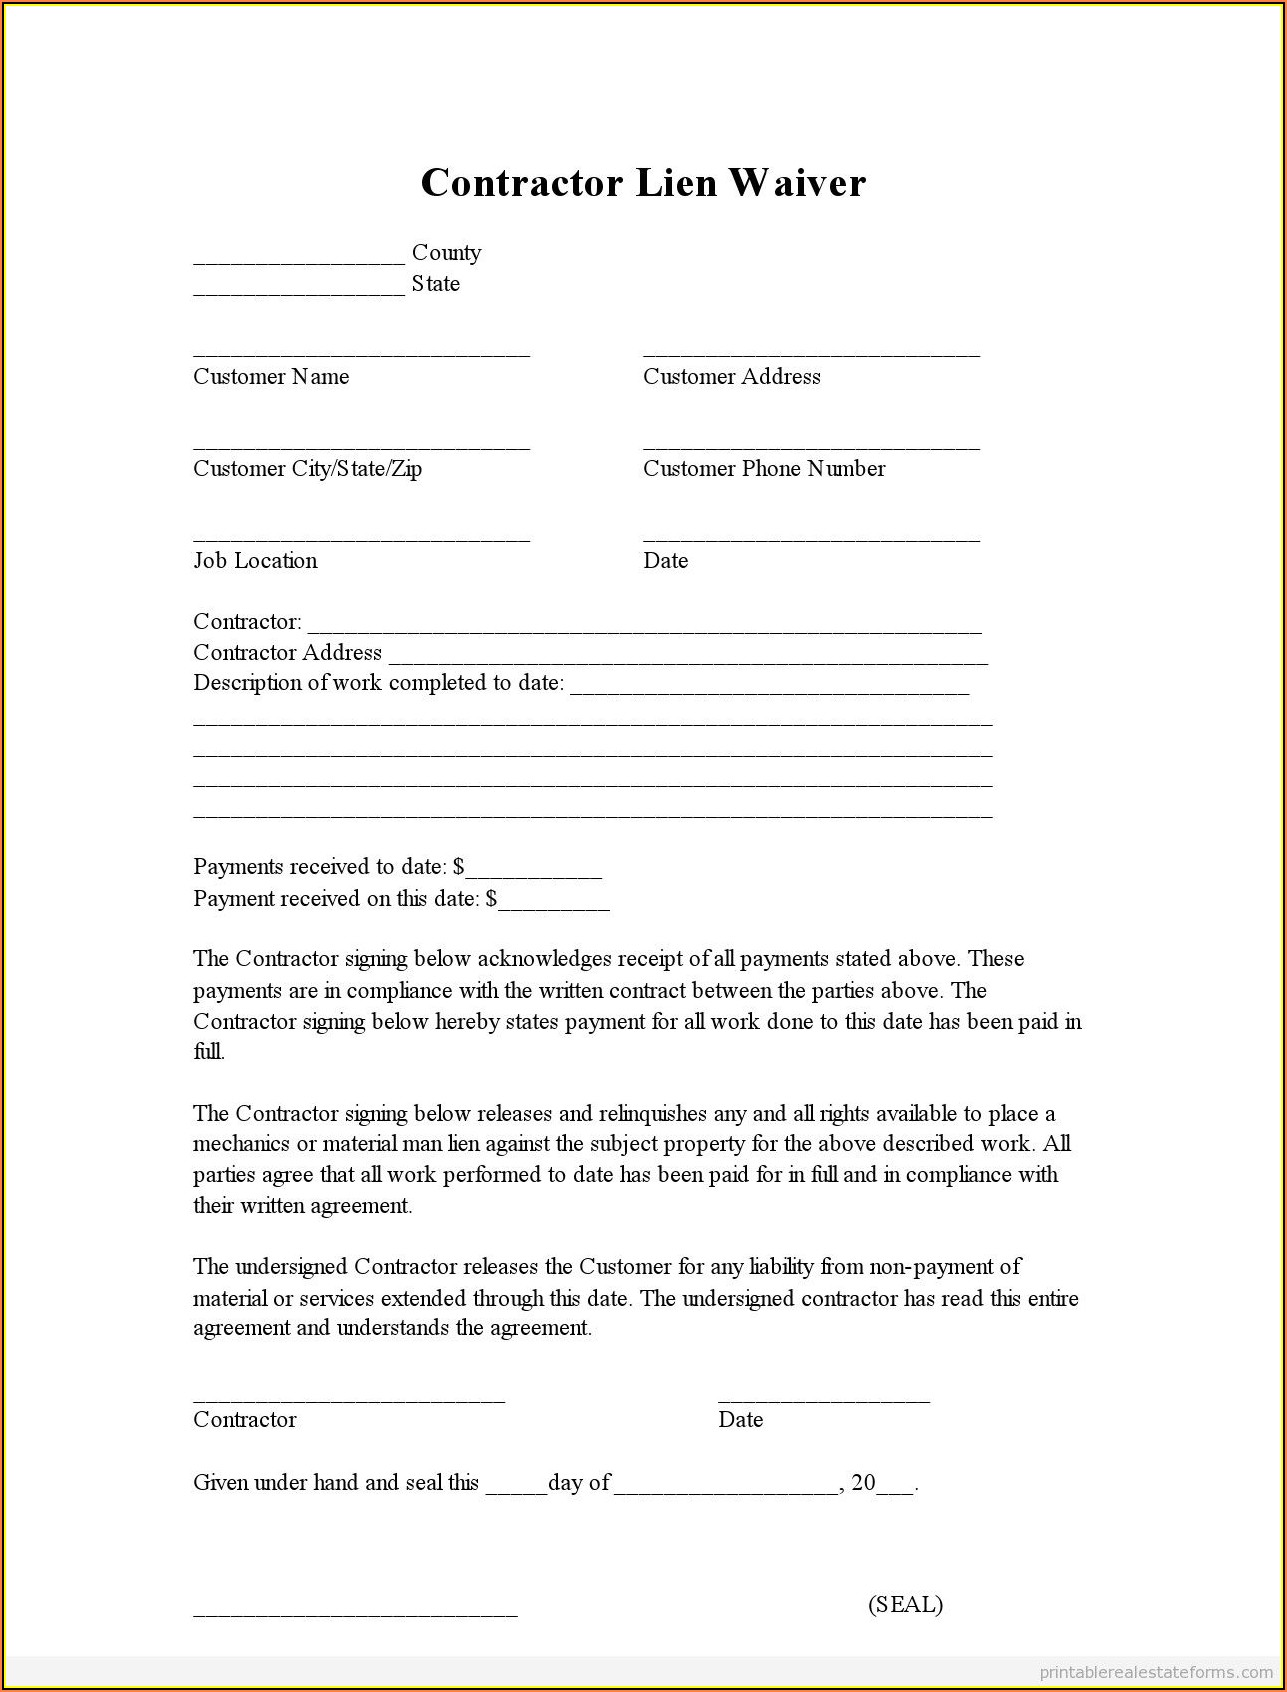 Landlord Lien Waiver Form